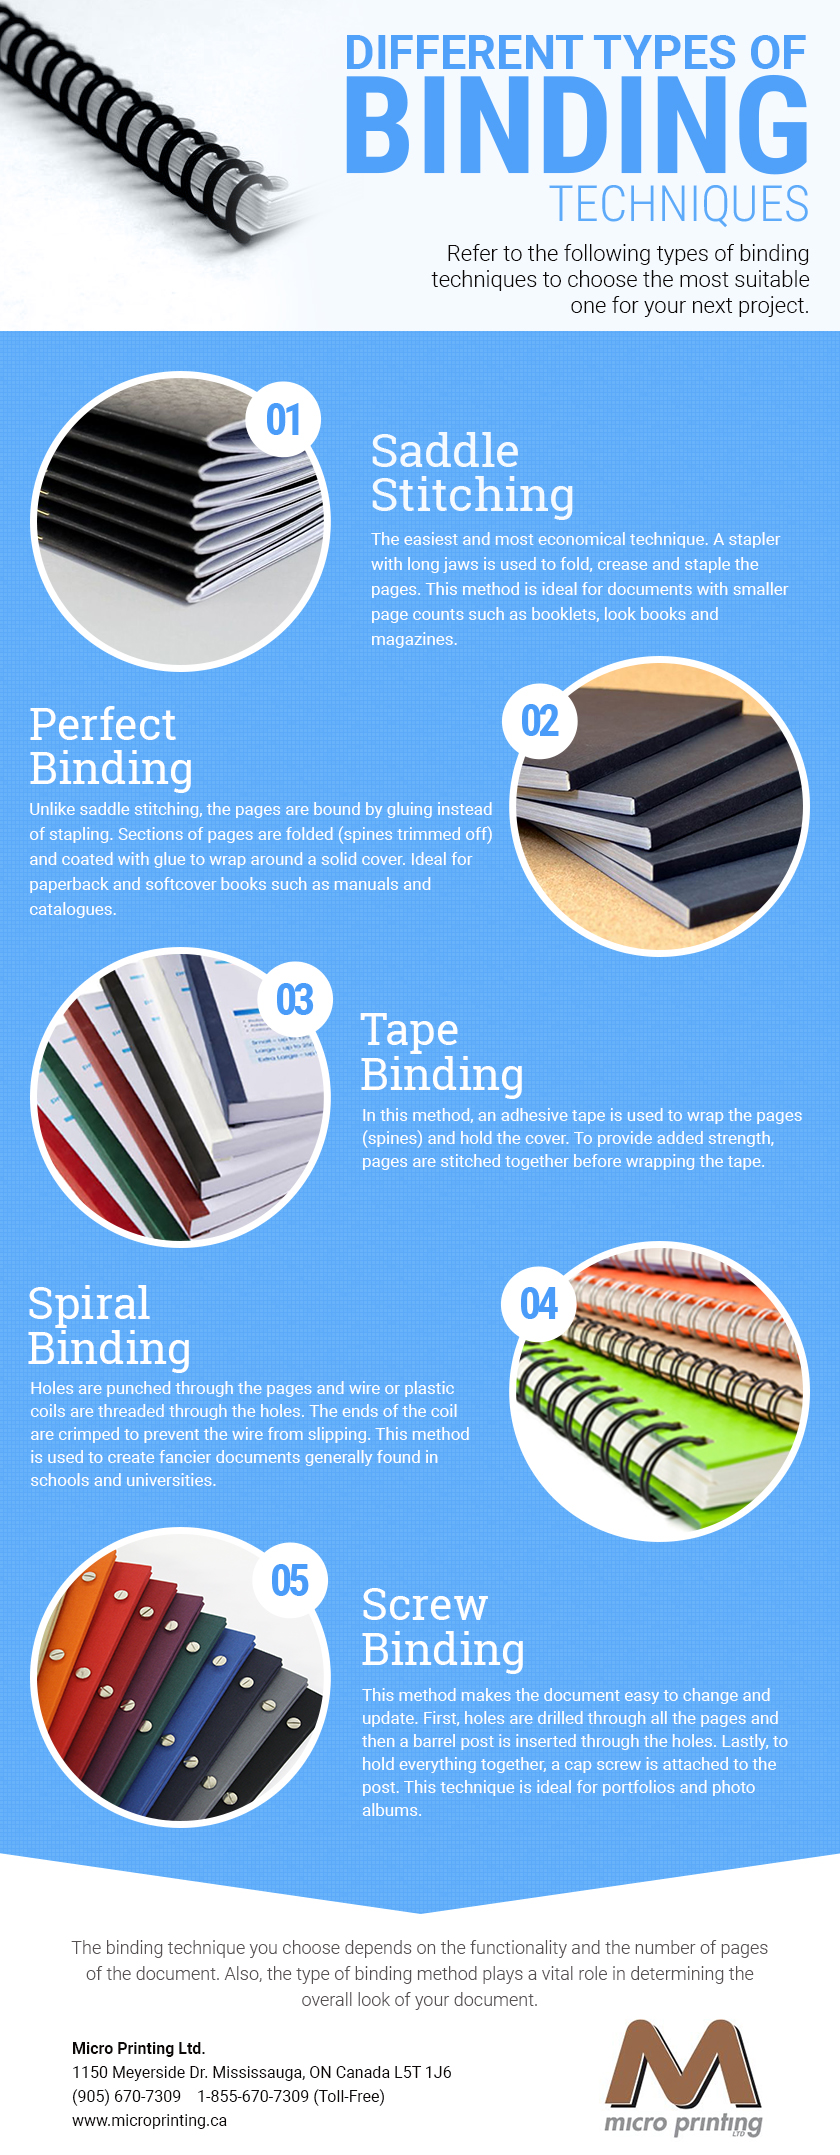 Different Types of Binding Techniques